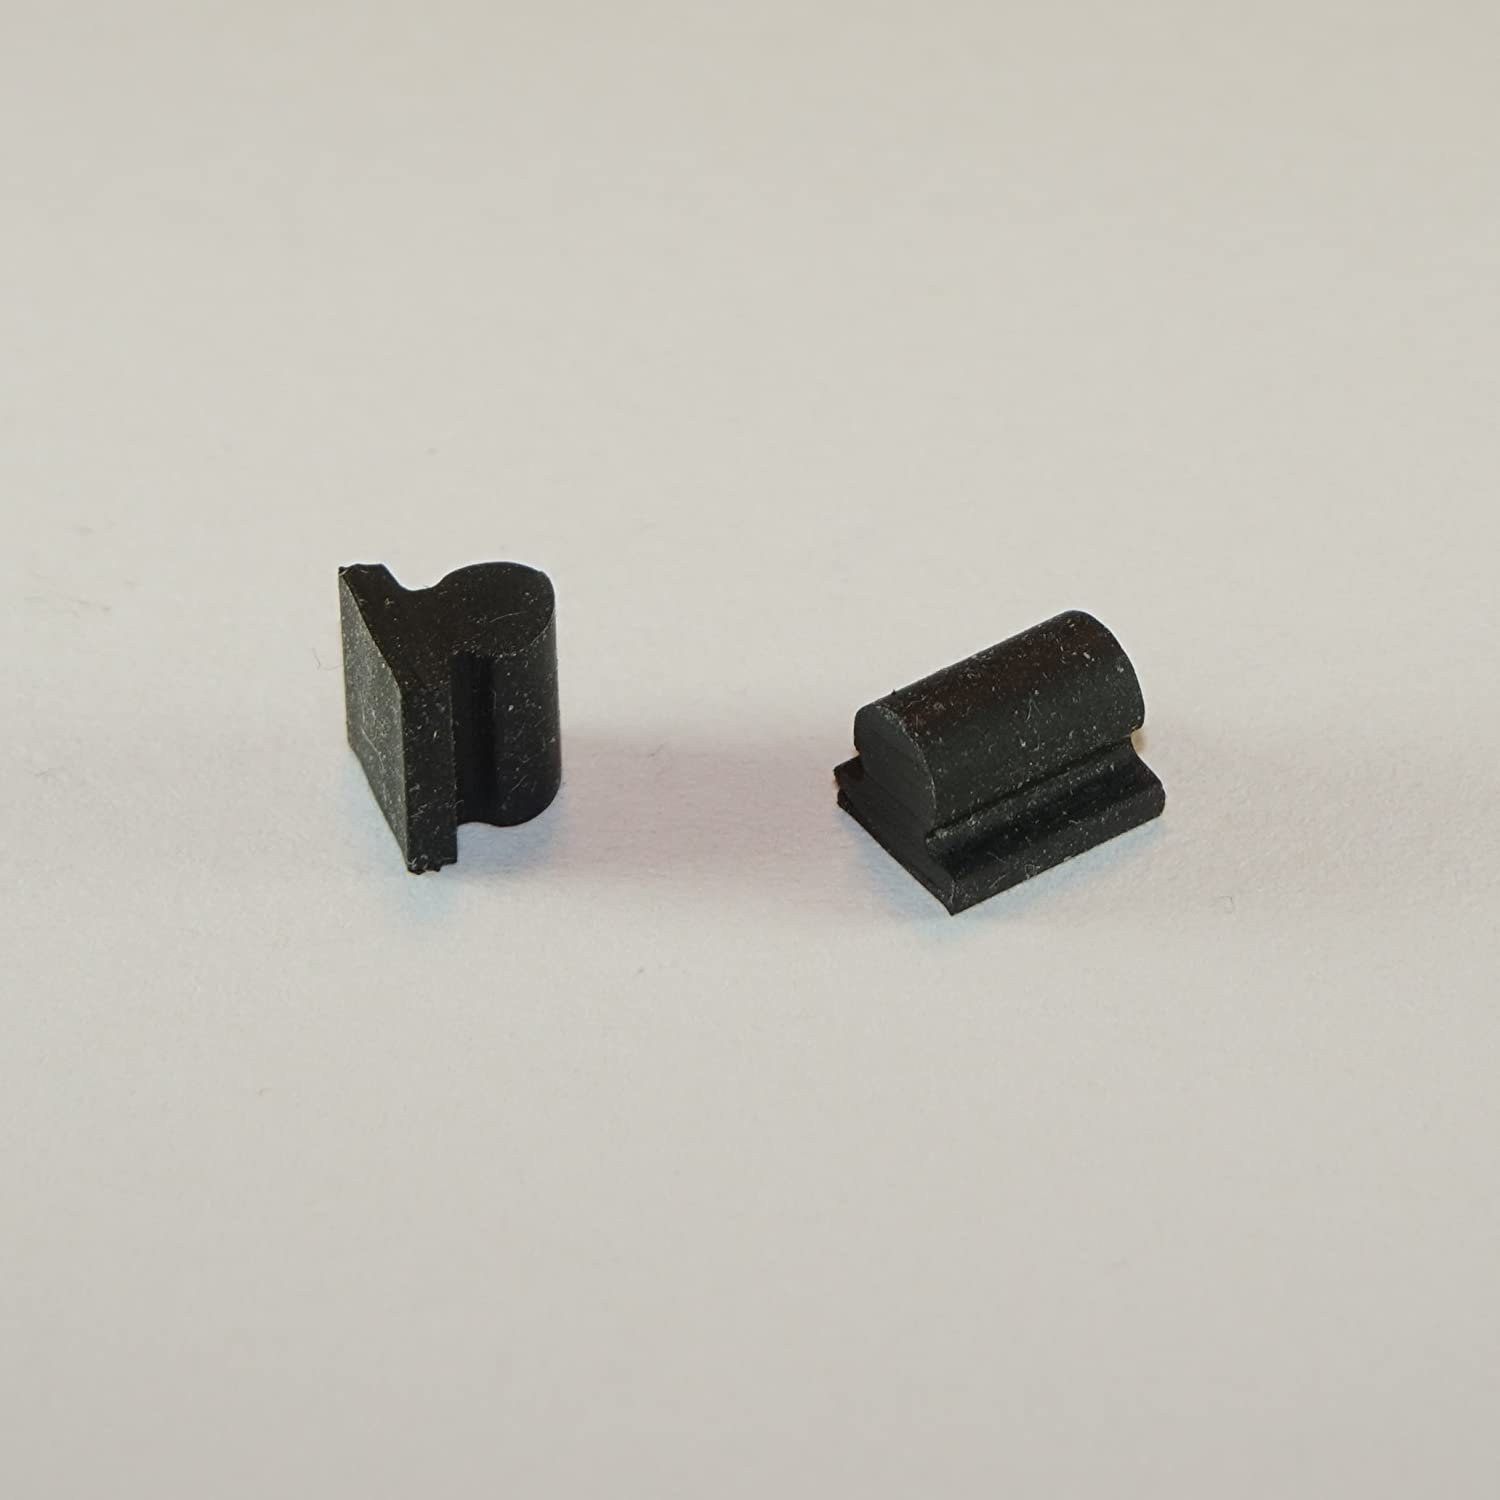 Yamaha Genuine Valve Rotor Rubber Bumper Stop French Horn Set of 2